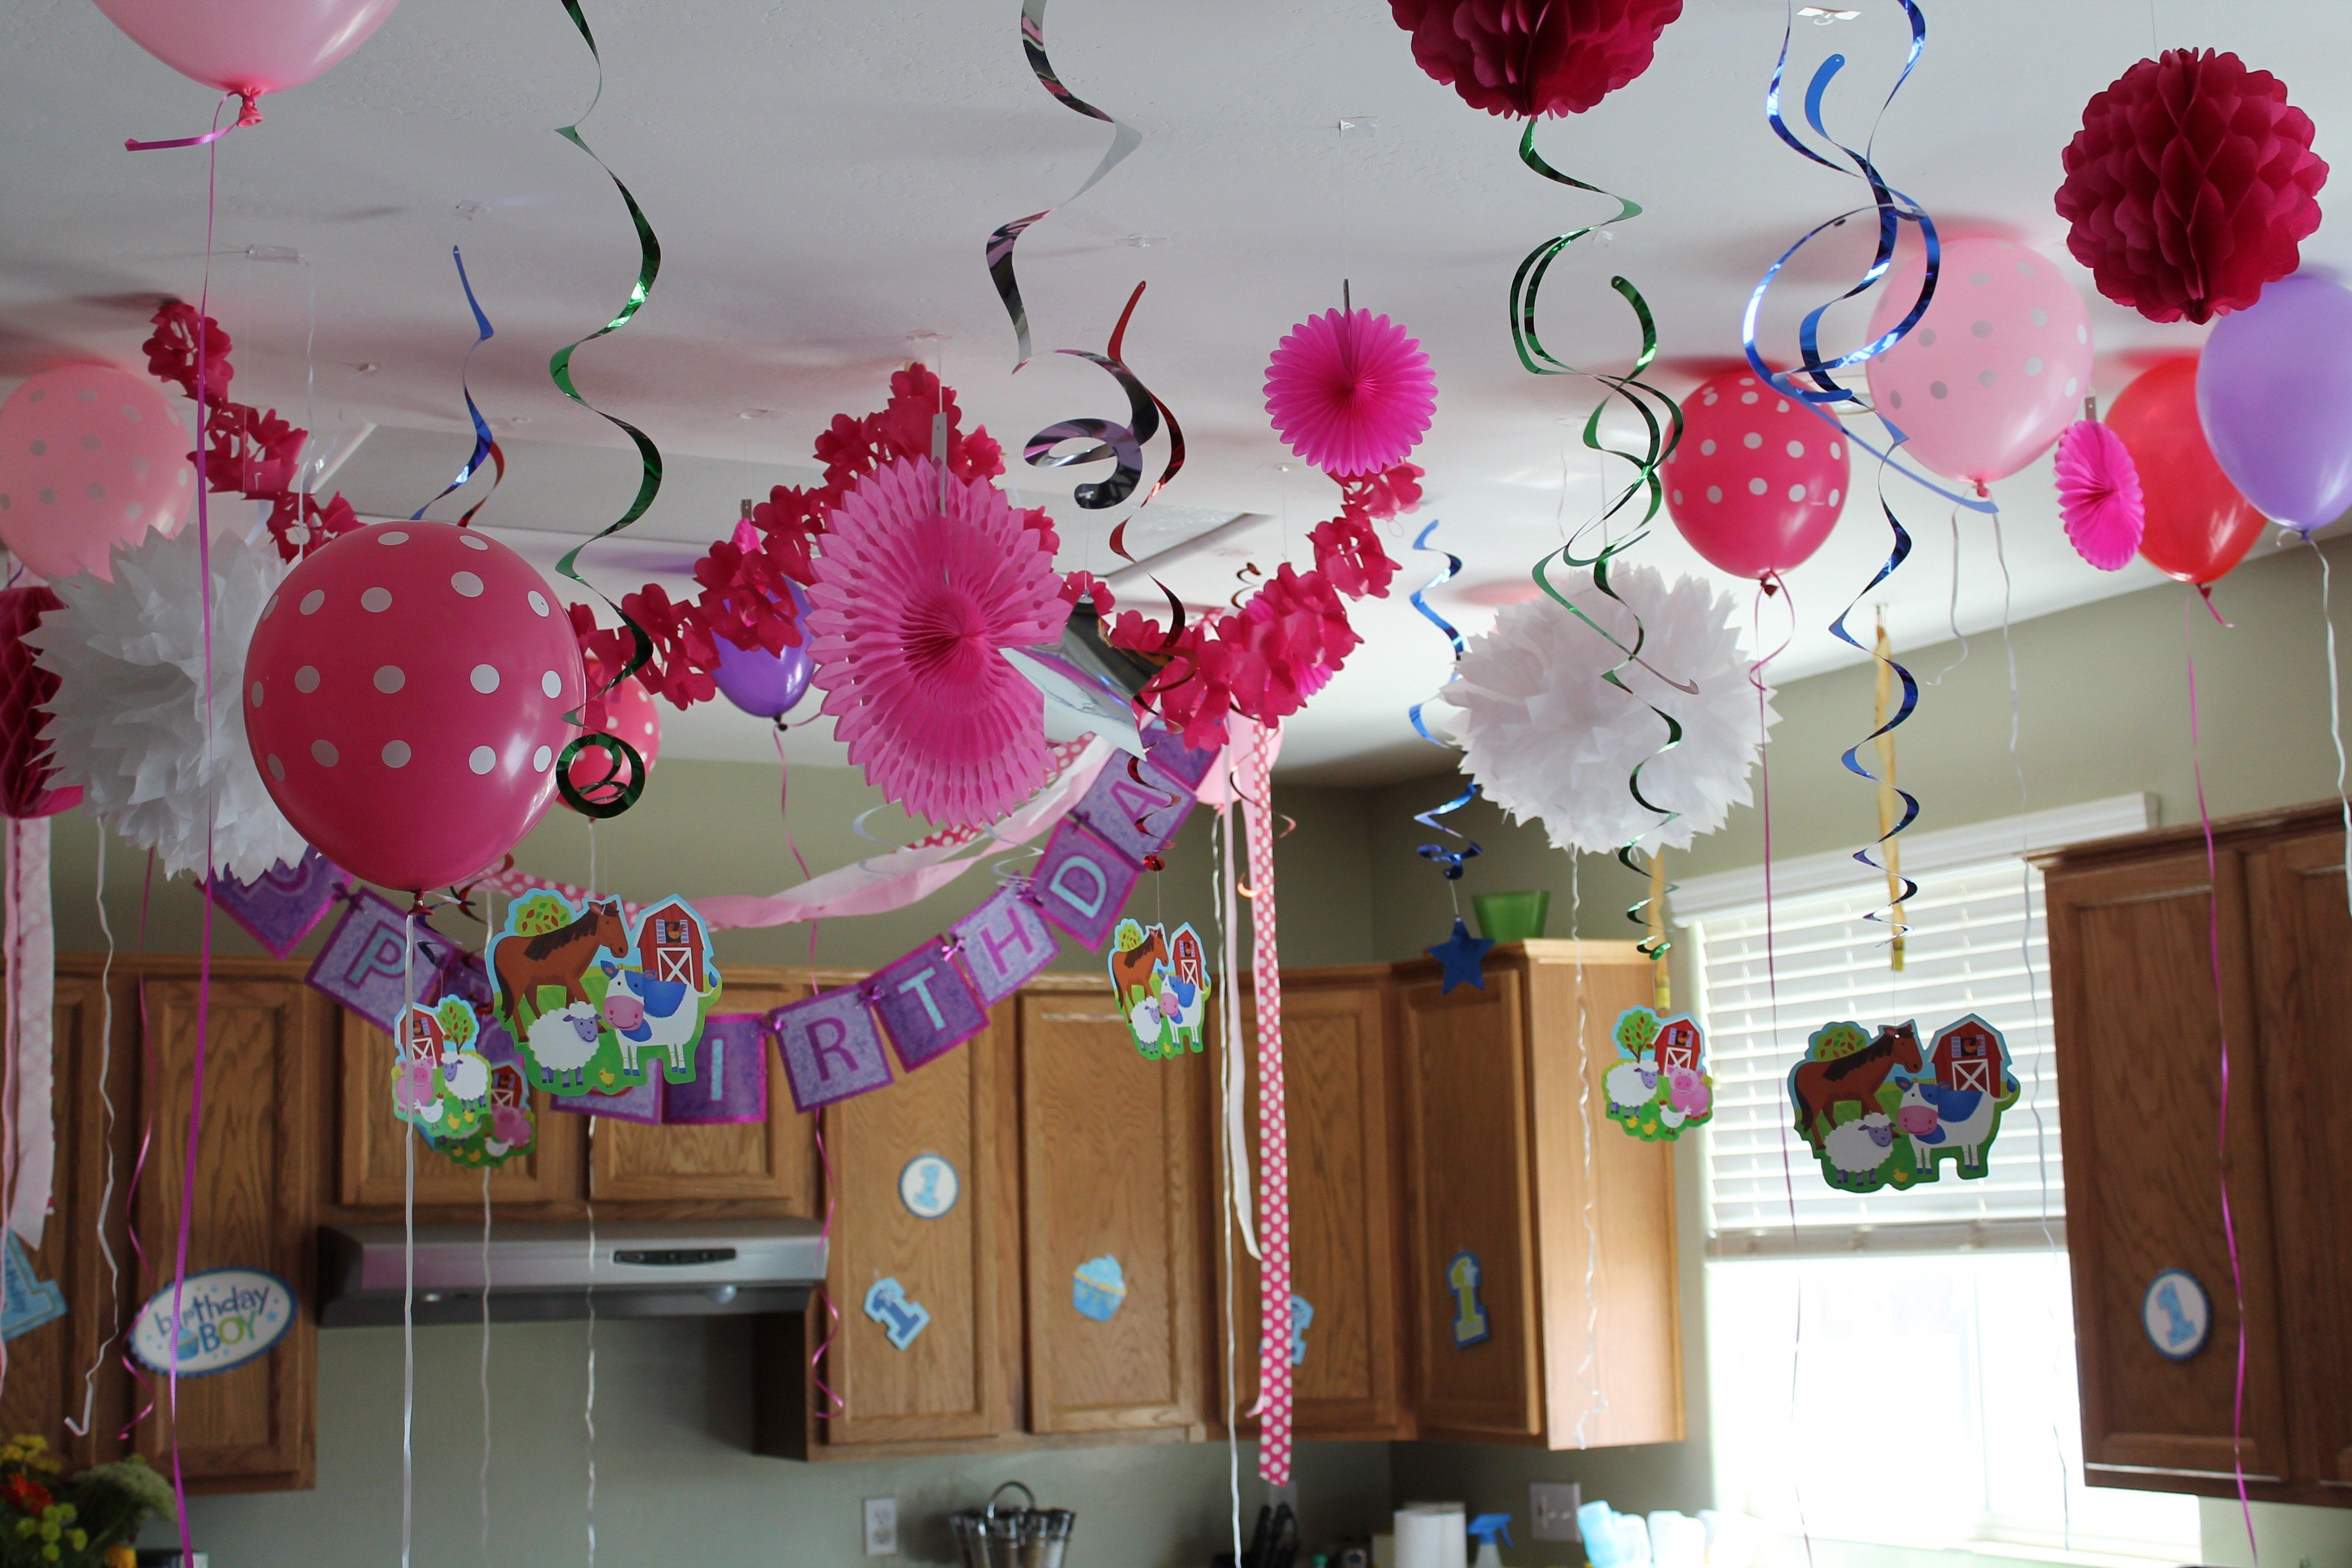 First Birthday Decoration Ideas At Home For Girl   Fresh First Birthday  Decoration Ideas At Home For Girl, Birthday Decoration At Home For Baby Girl  Cheap